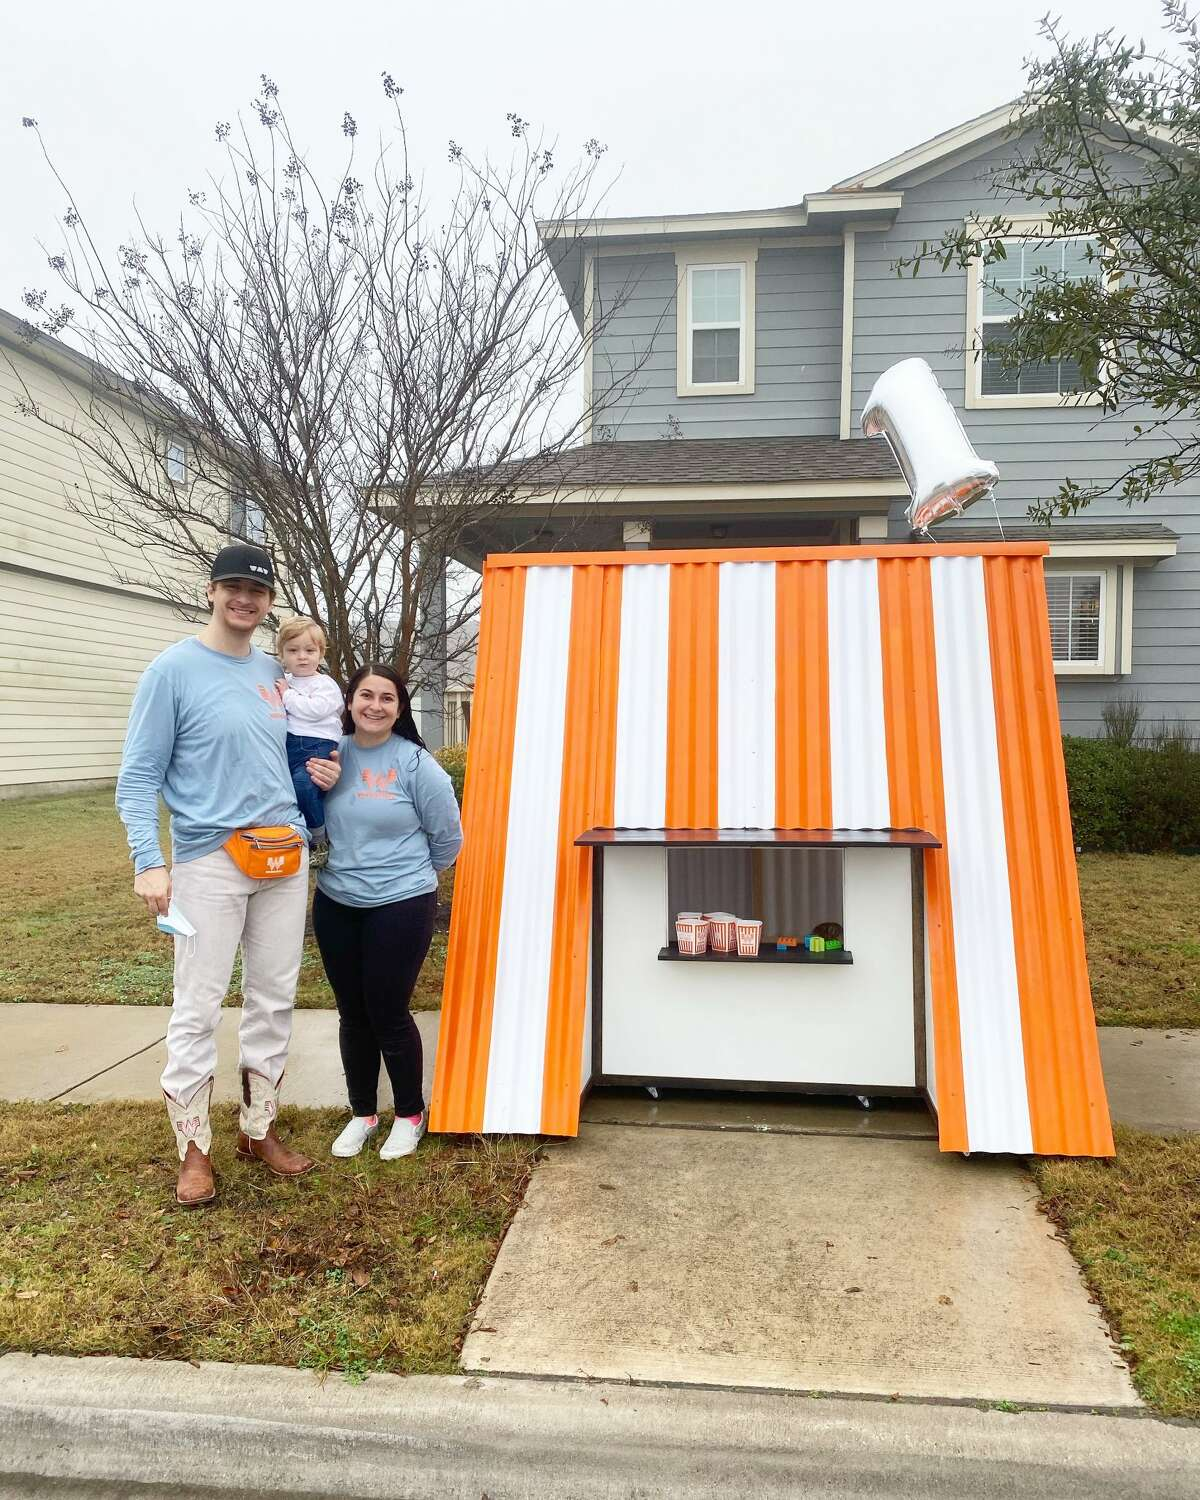 Danae and Ian Klingspor from Pflugerville (Northeast of Austin) build a more than 6-foot Whataburger playhouse for their baby's first birthday on Jan. 24.